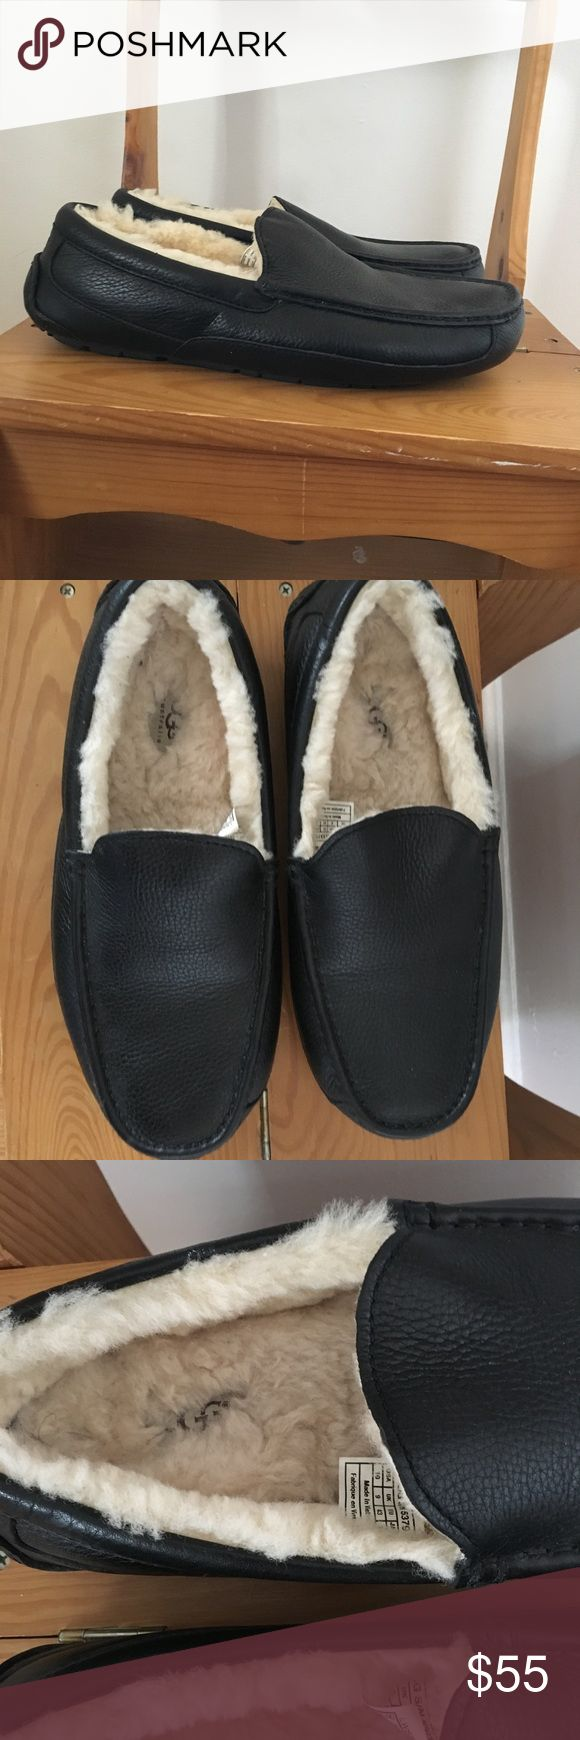 ✨BARELY WORN✨Men's UGG Slippers Barely worn!! Genuine UGG Ascot slippers retail price $120. Just worn around the house a couple of times. Excellent condition. Comment with questions! UGG Shoes Loafers & Slip-Ons